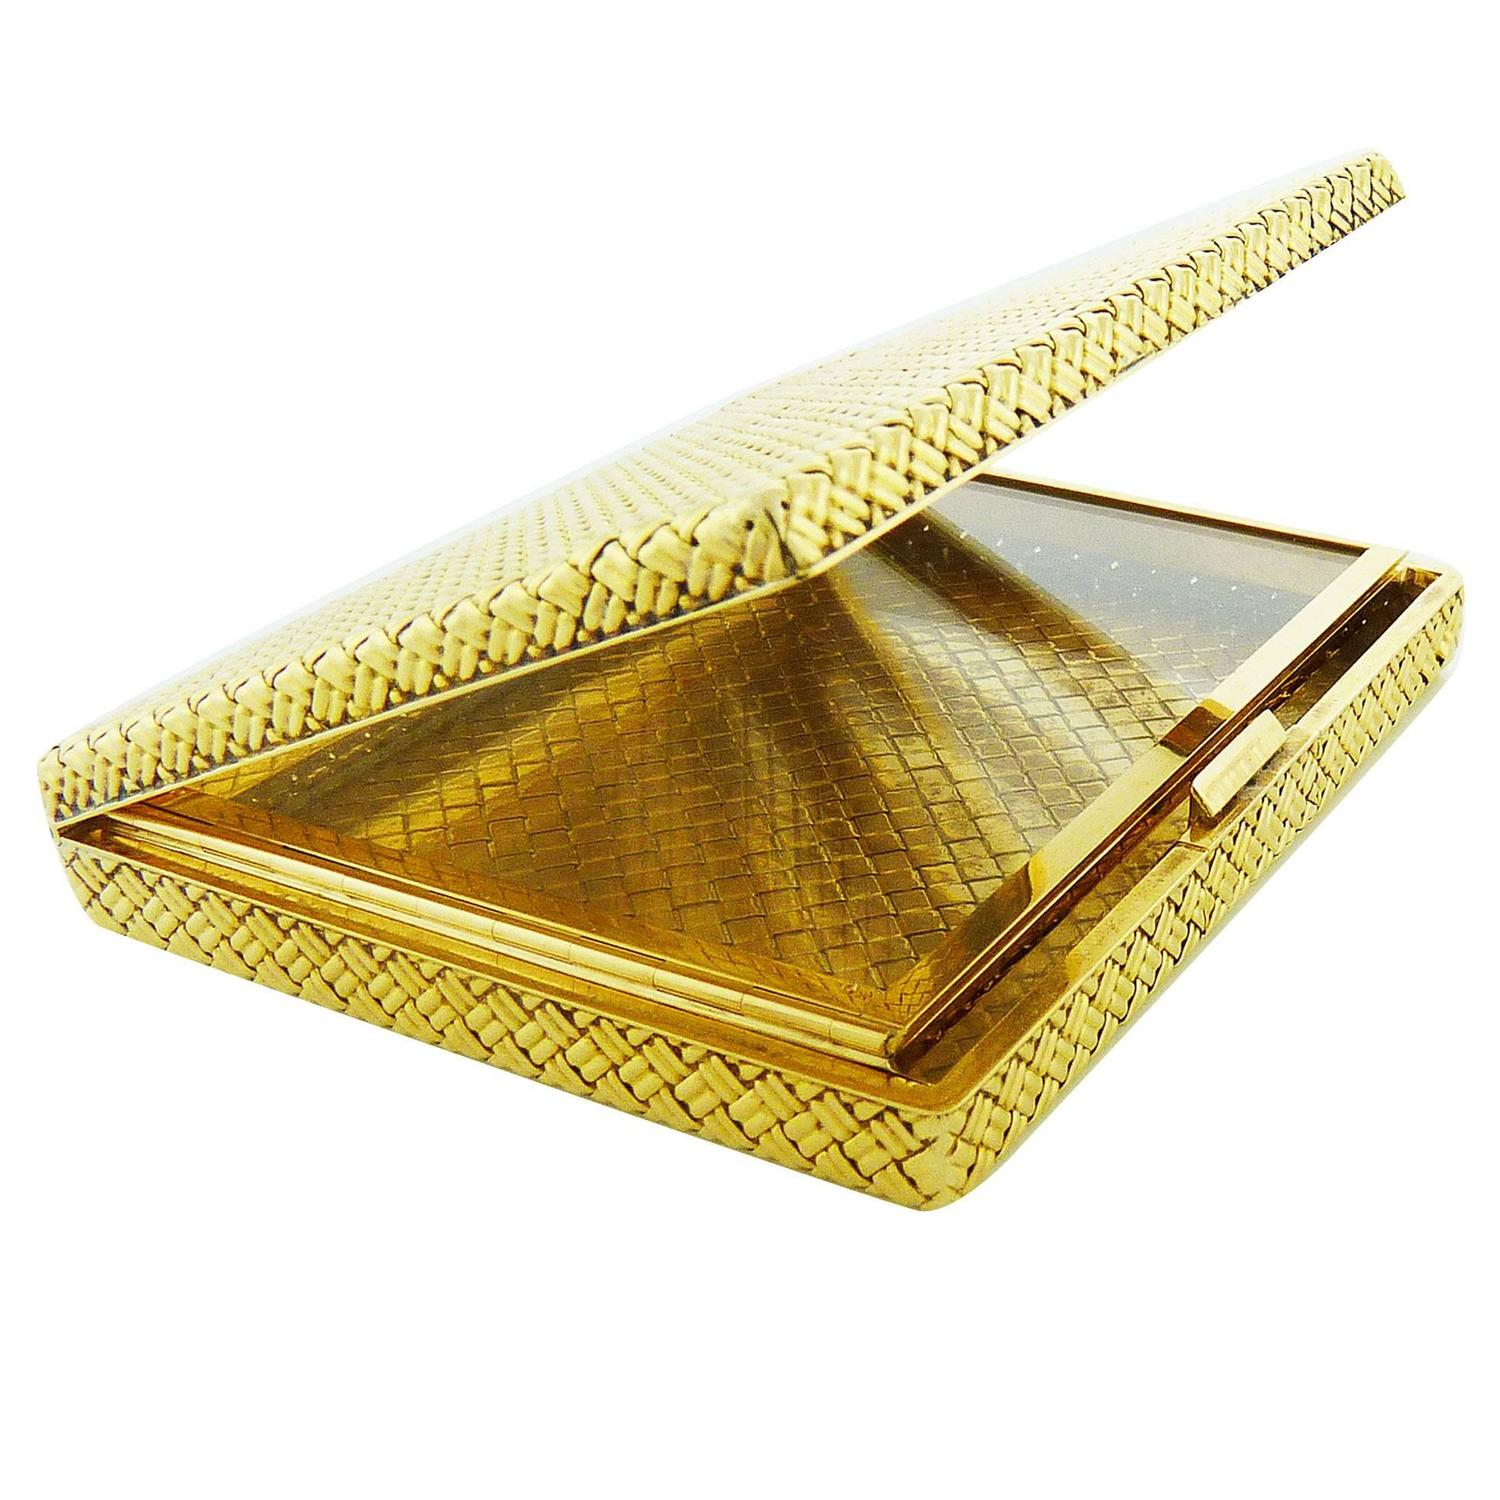 Van Cleef and Arpels Sapphire Gold Business Card Case Holder Box ...